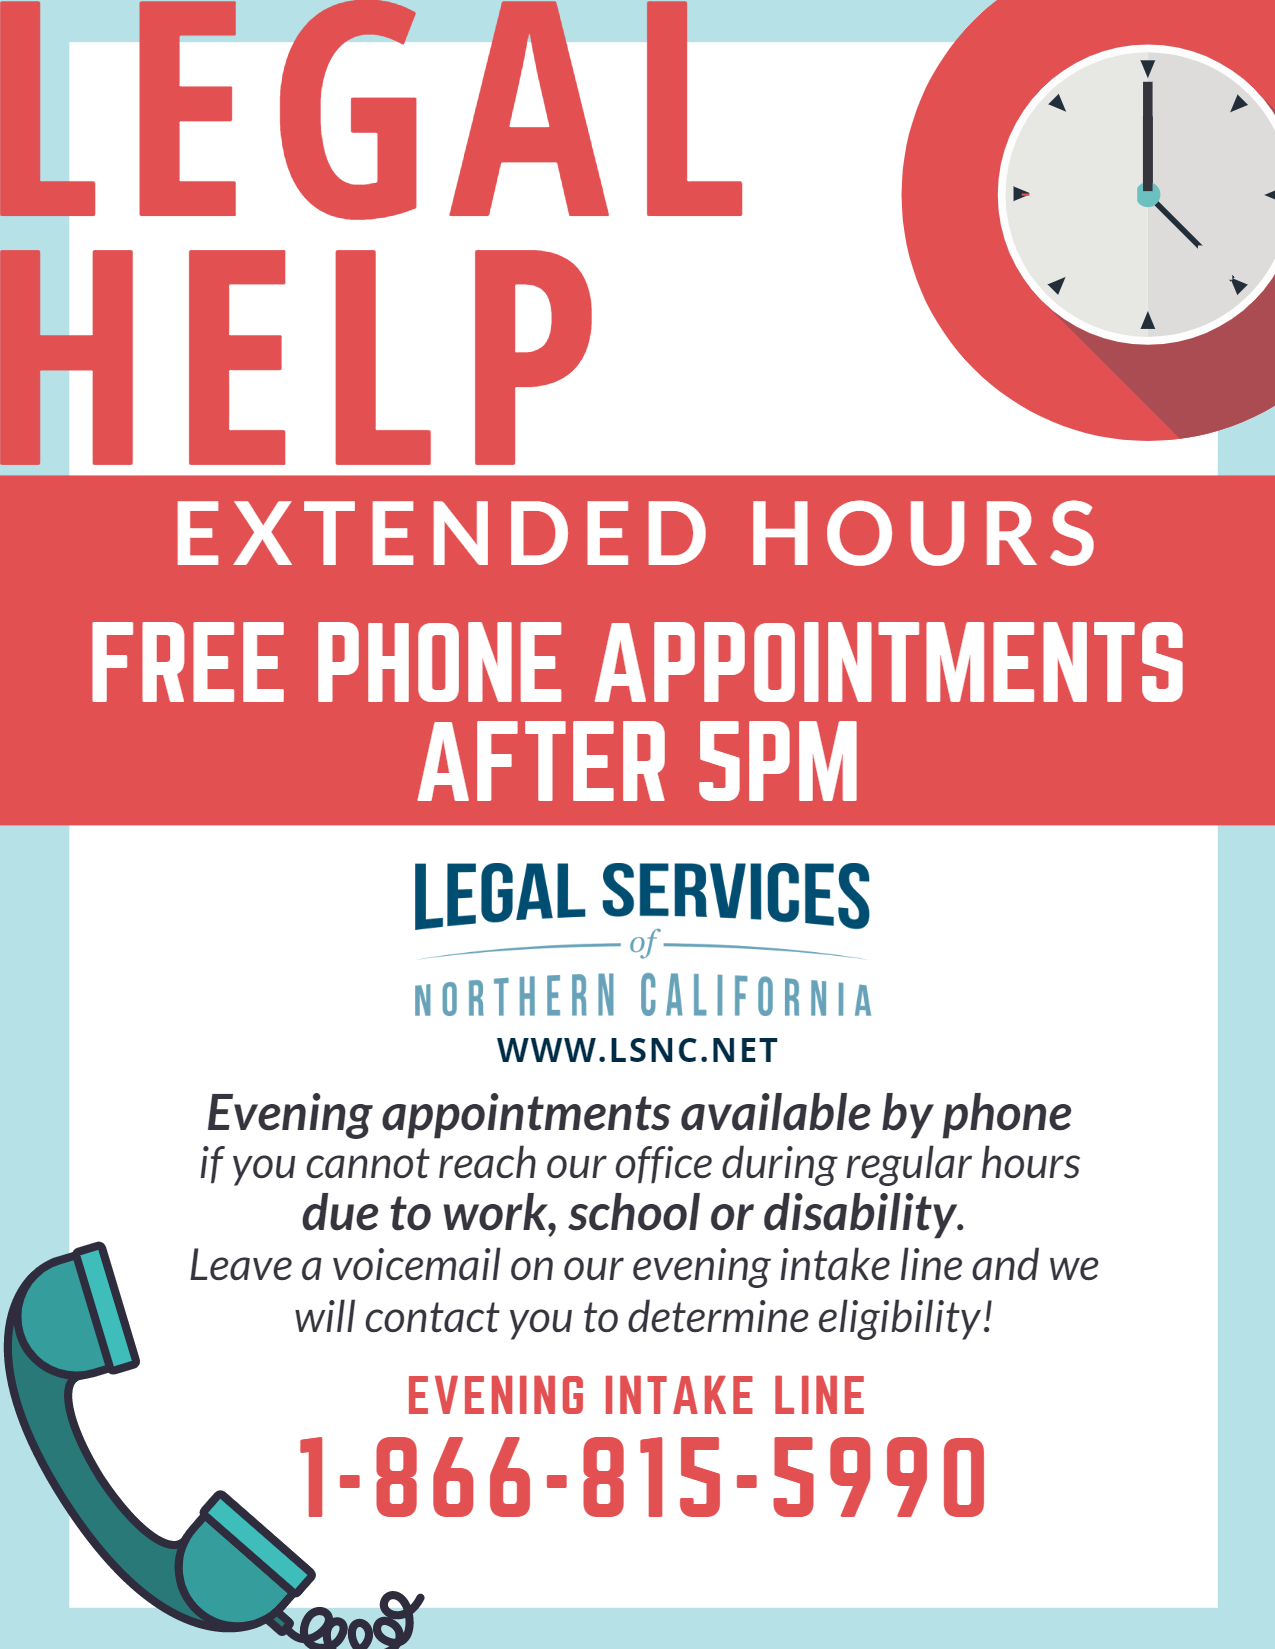 Flyer for Legal Services of Northern California (LSNC)